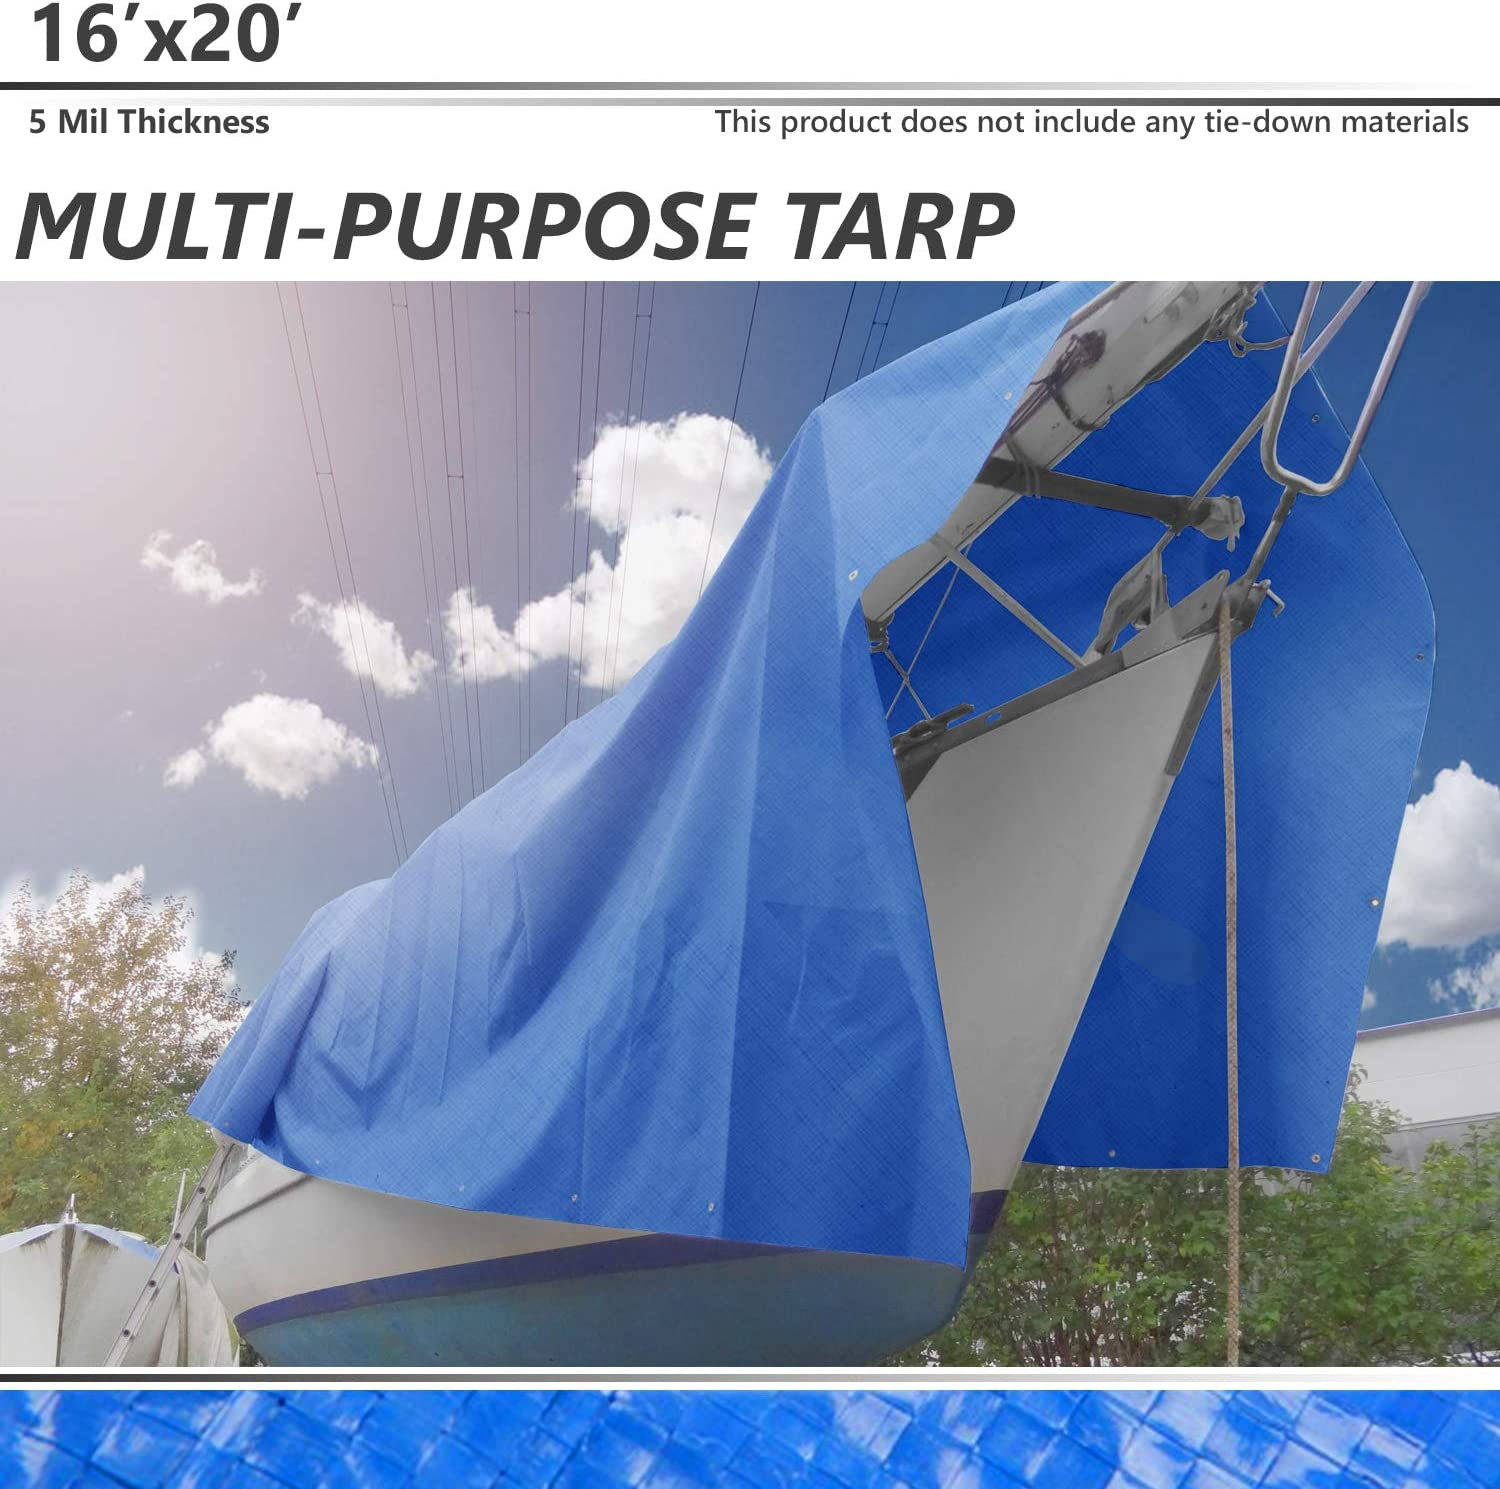 RV or Pool Cover UV Resistant for Tarpaulin Canopy Tent Boat Silver Multi-Purpose Waterproof Reinforced Rip-Stop with Grommets BOUYA 8 x 10 Tarp 10-mil Heavy Duty Thick Material